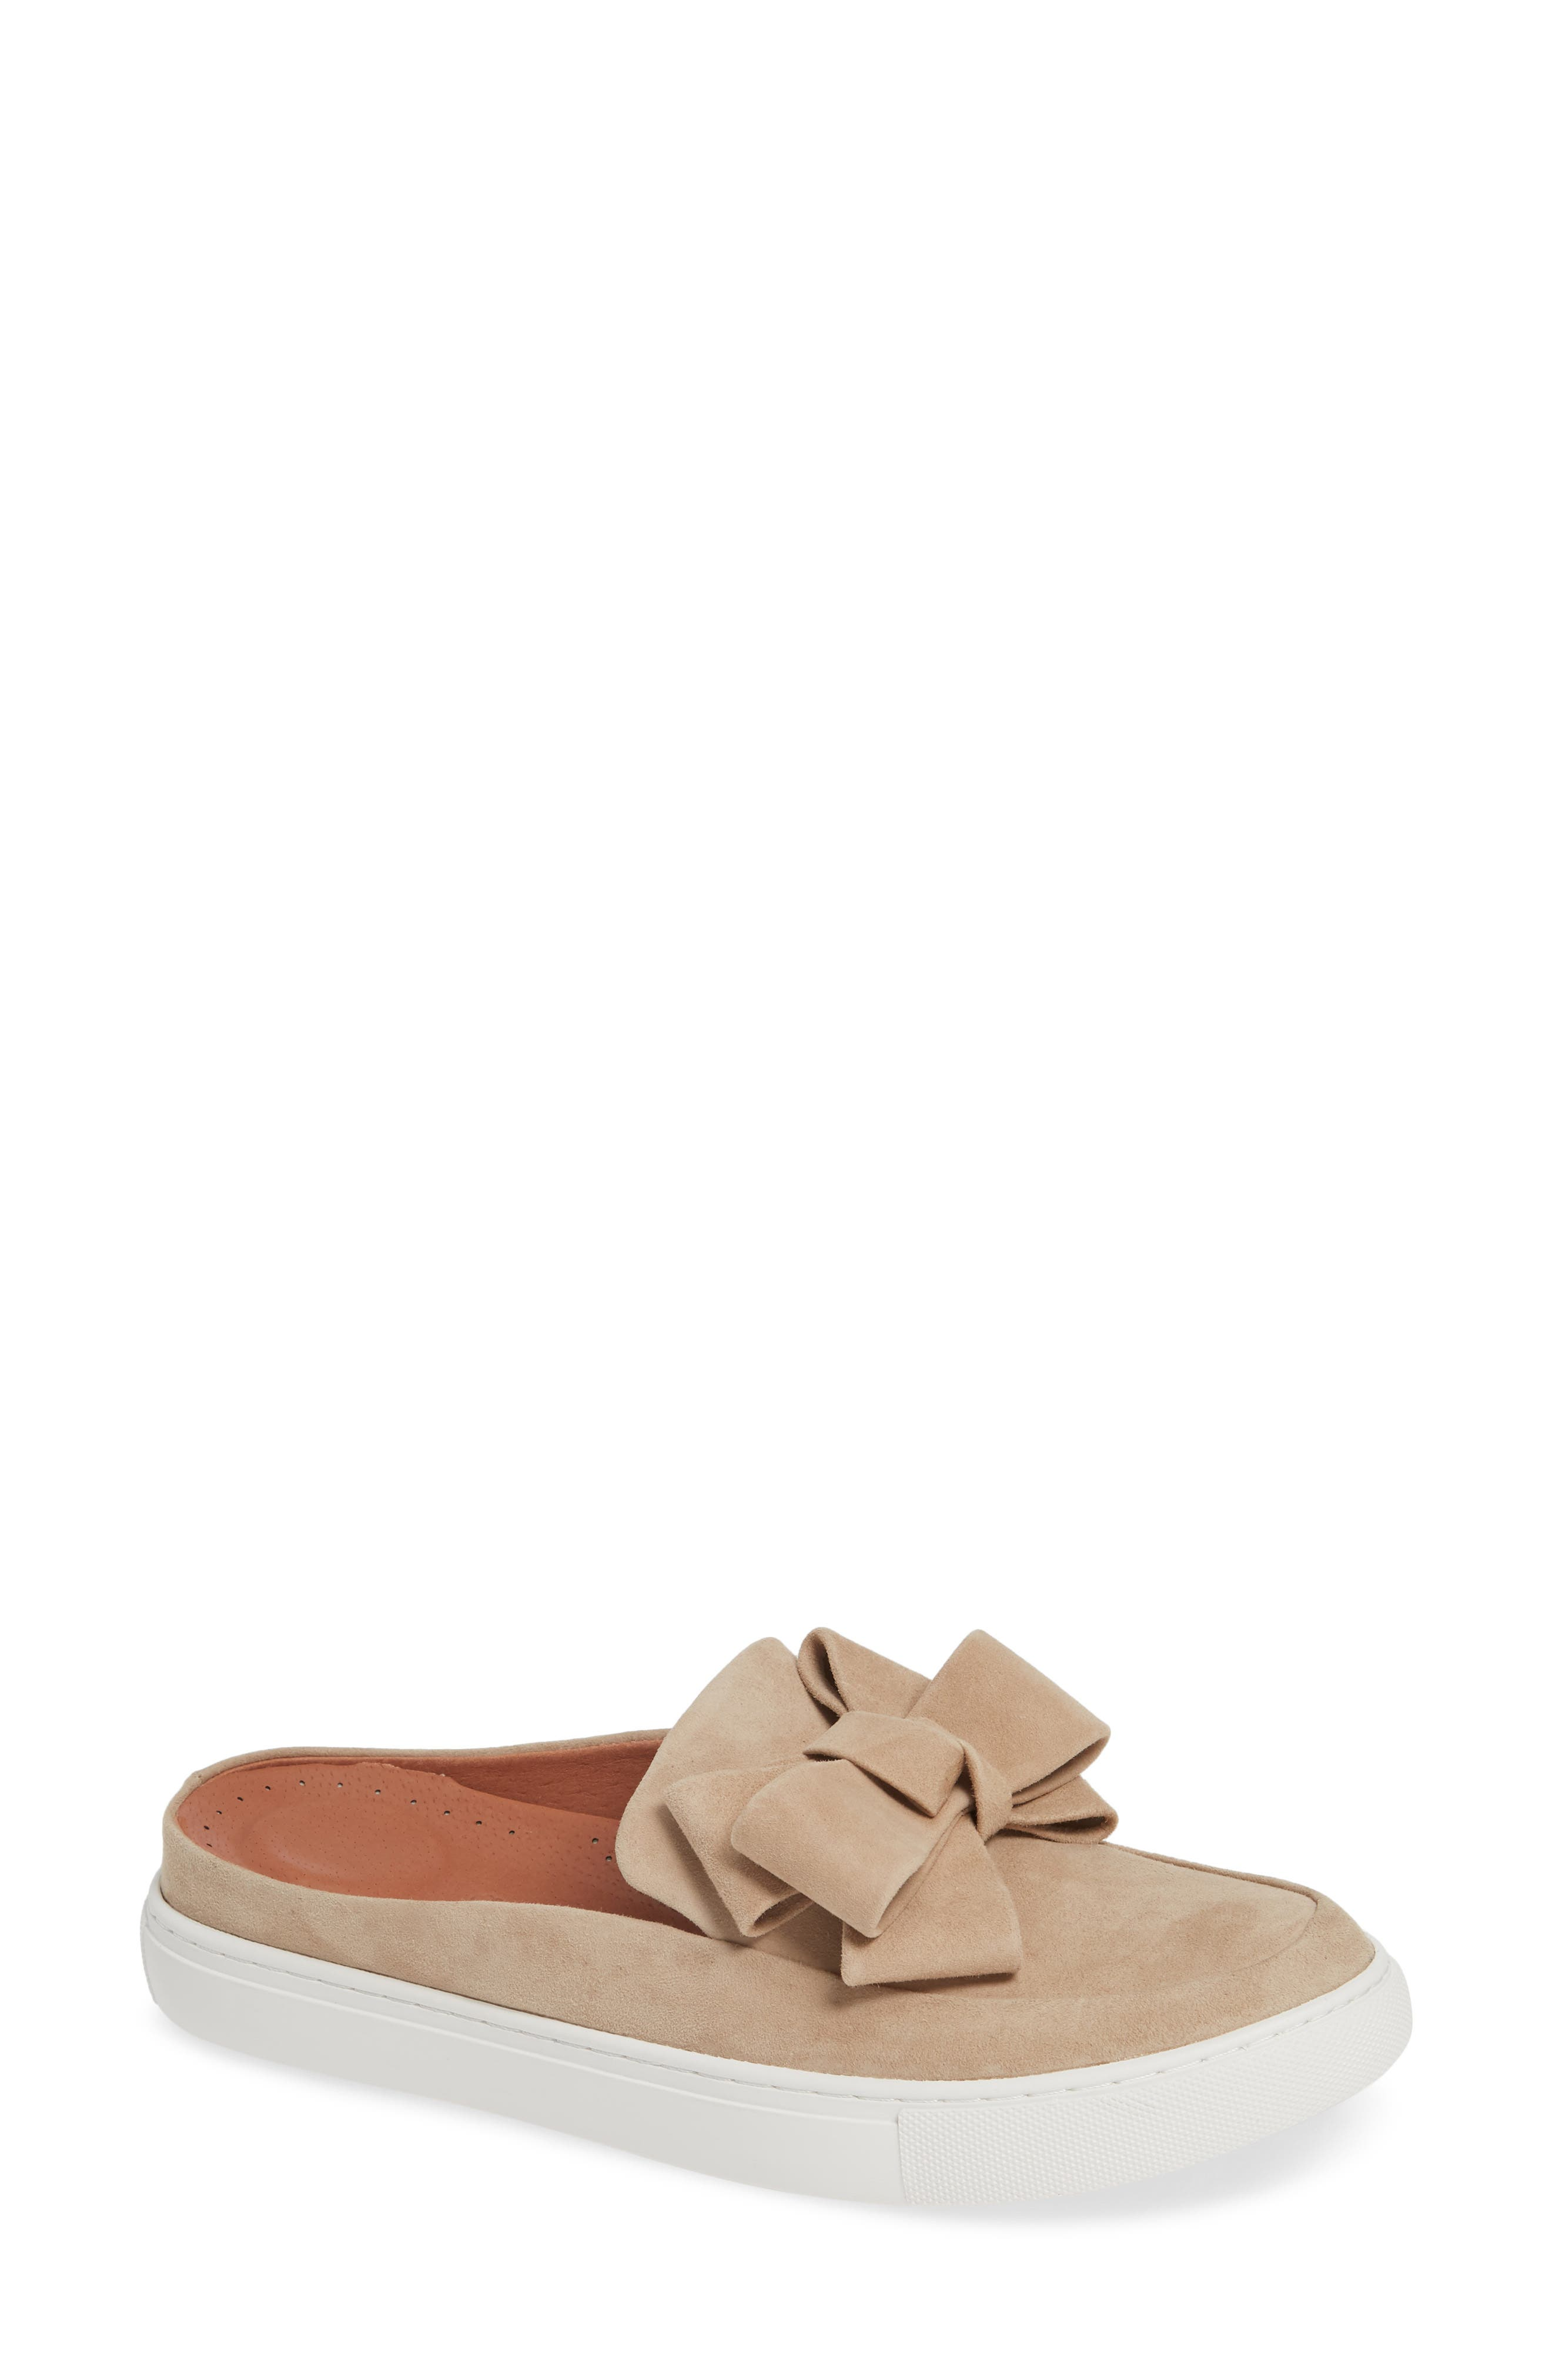 GENTLE SOULS BY KENNETH COLE Rory Bow Mule, Main, color, 233